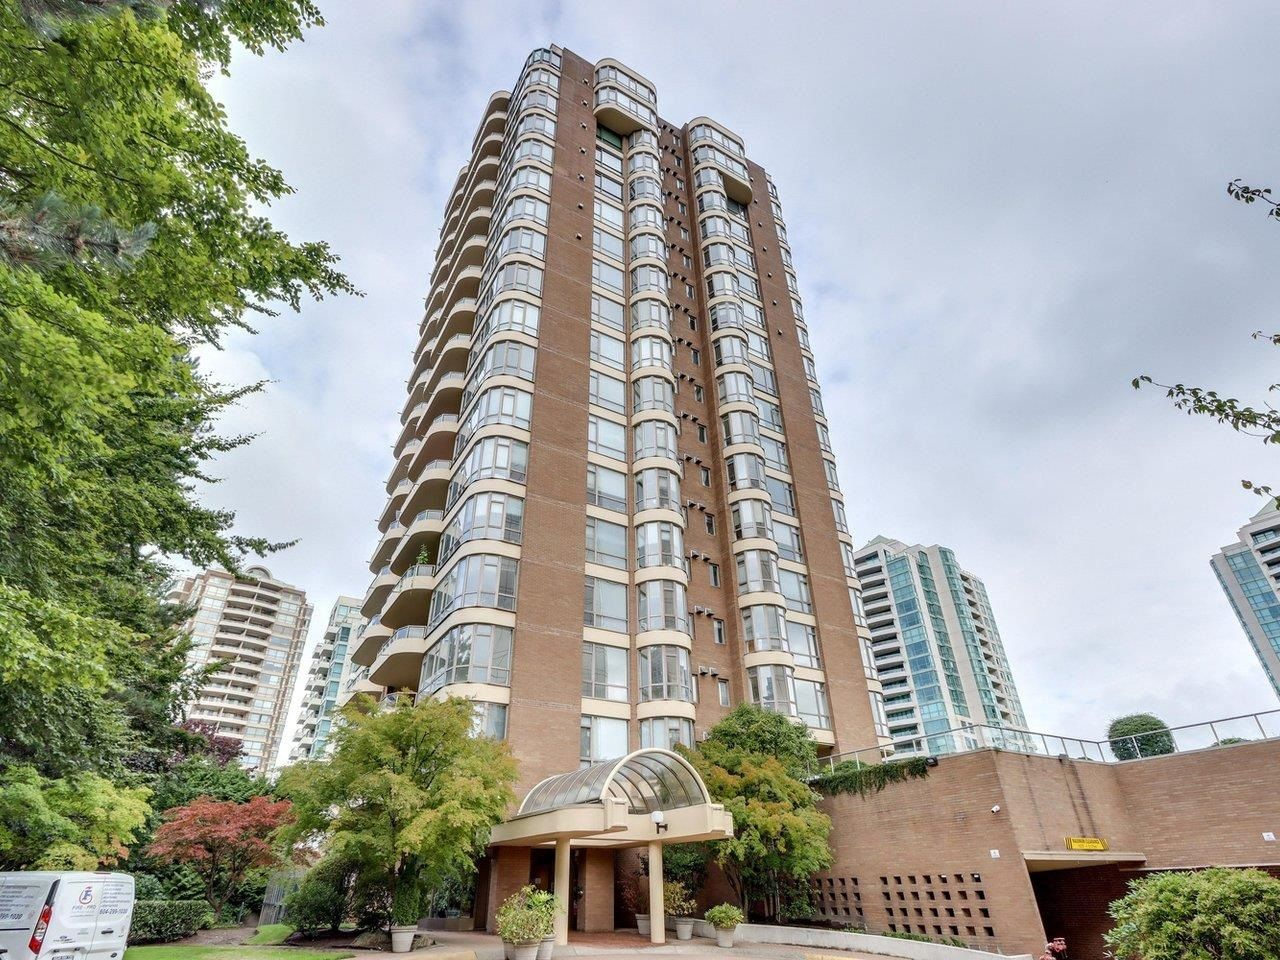 """Main Photo: 1400 5967 WILSON Avenue in Burnaby: Metrotown Condo for sale in """"PLACE MERIDIAN"""" (Burnaby South)  : MLS®# R2619905"""